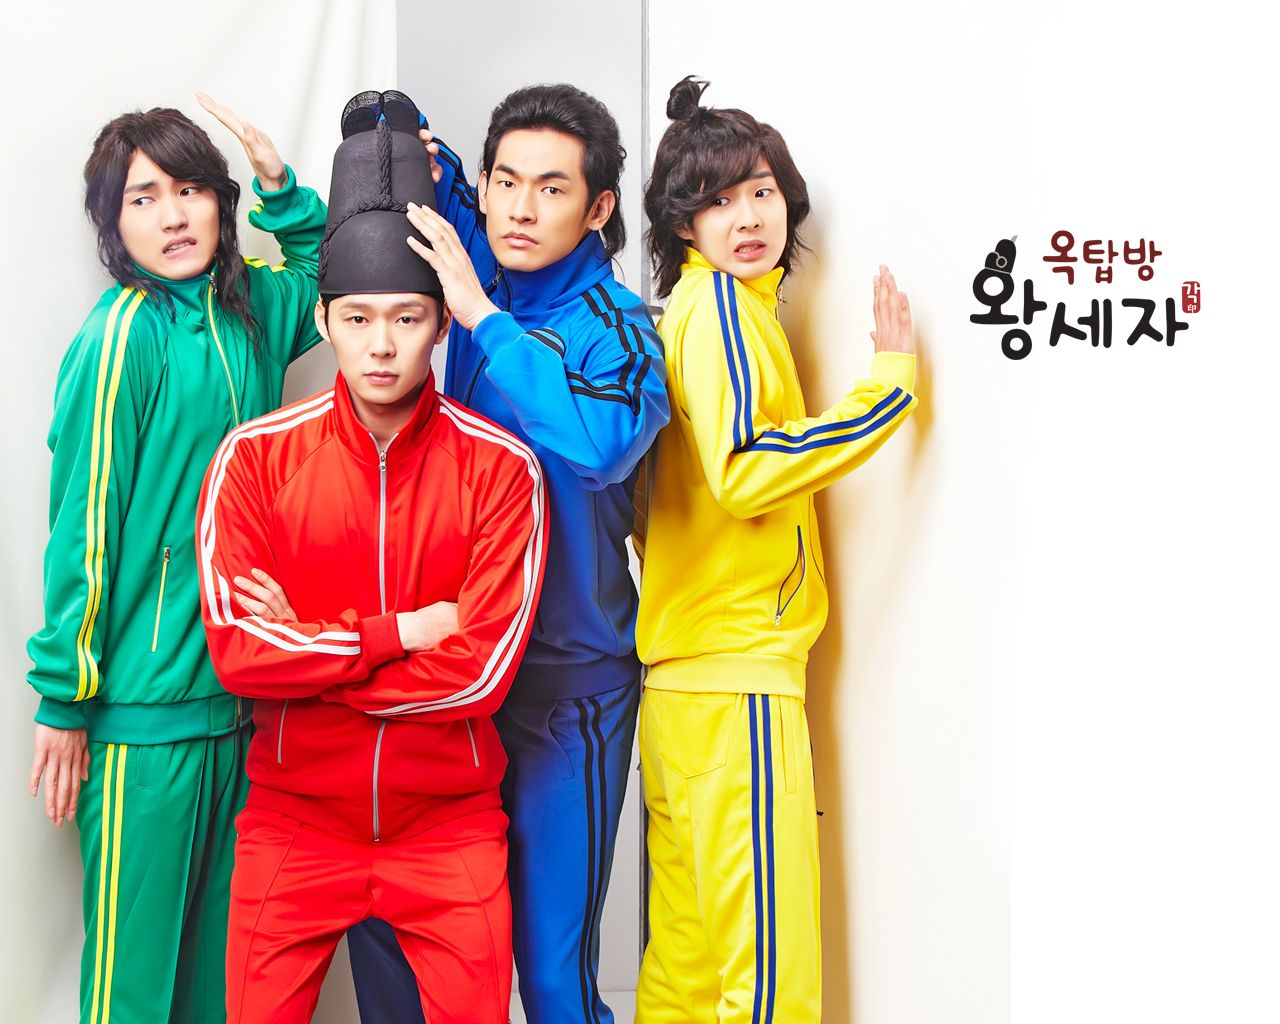 Latest Trend in Kdramas: Time Warping!